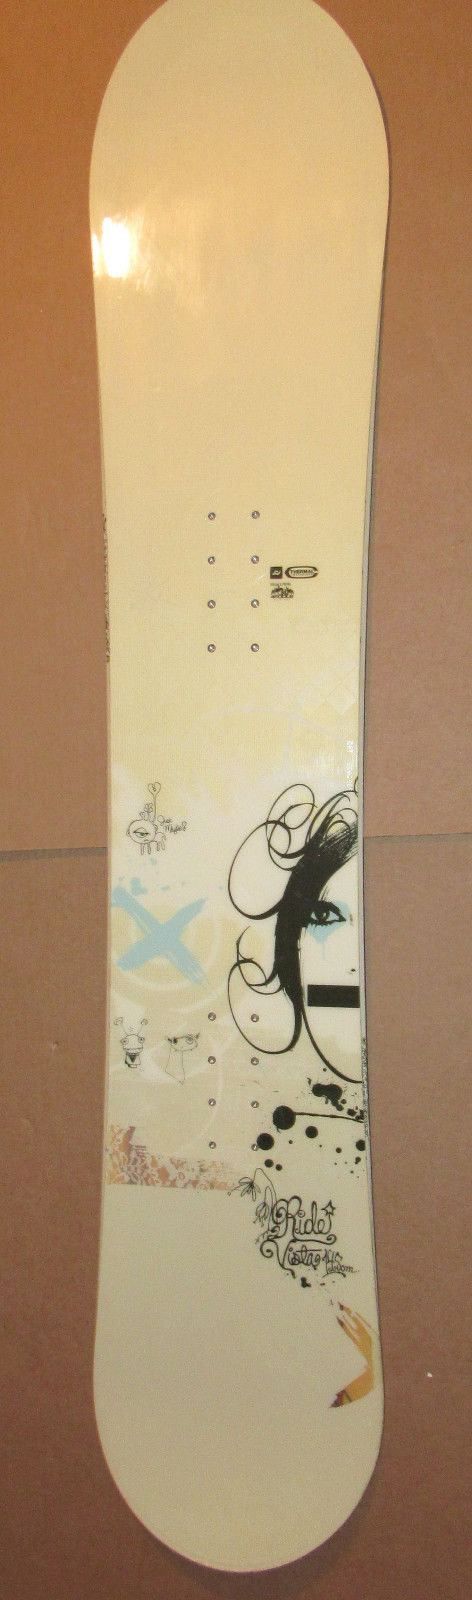 Ride VISTA Snowboard 145 cm, Snow Sport, Winter Sport Board, Skiing